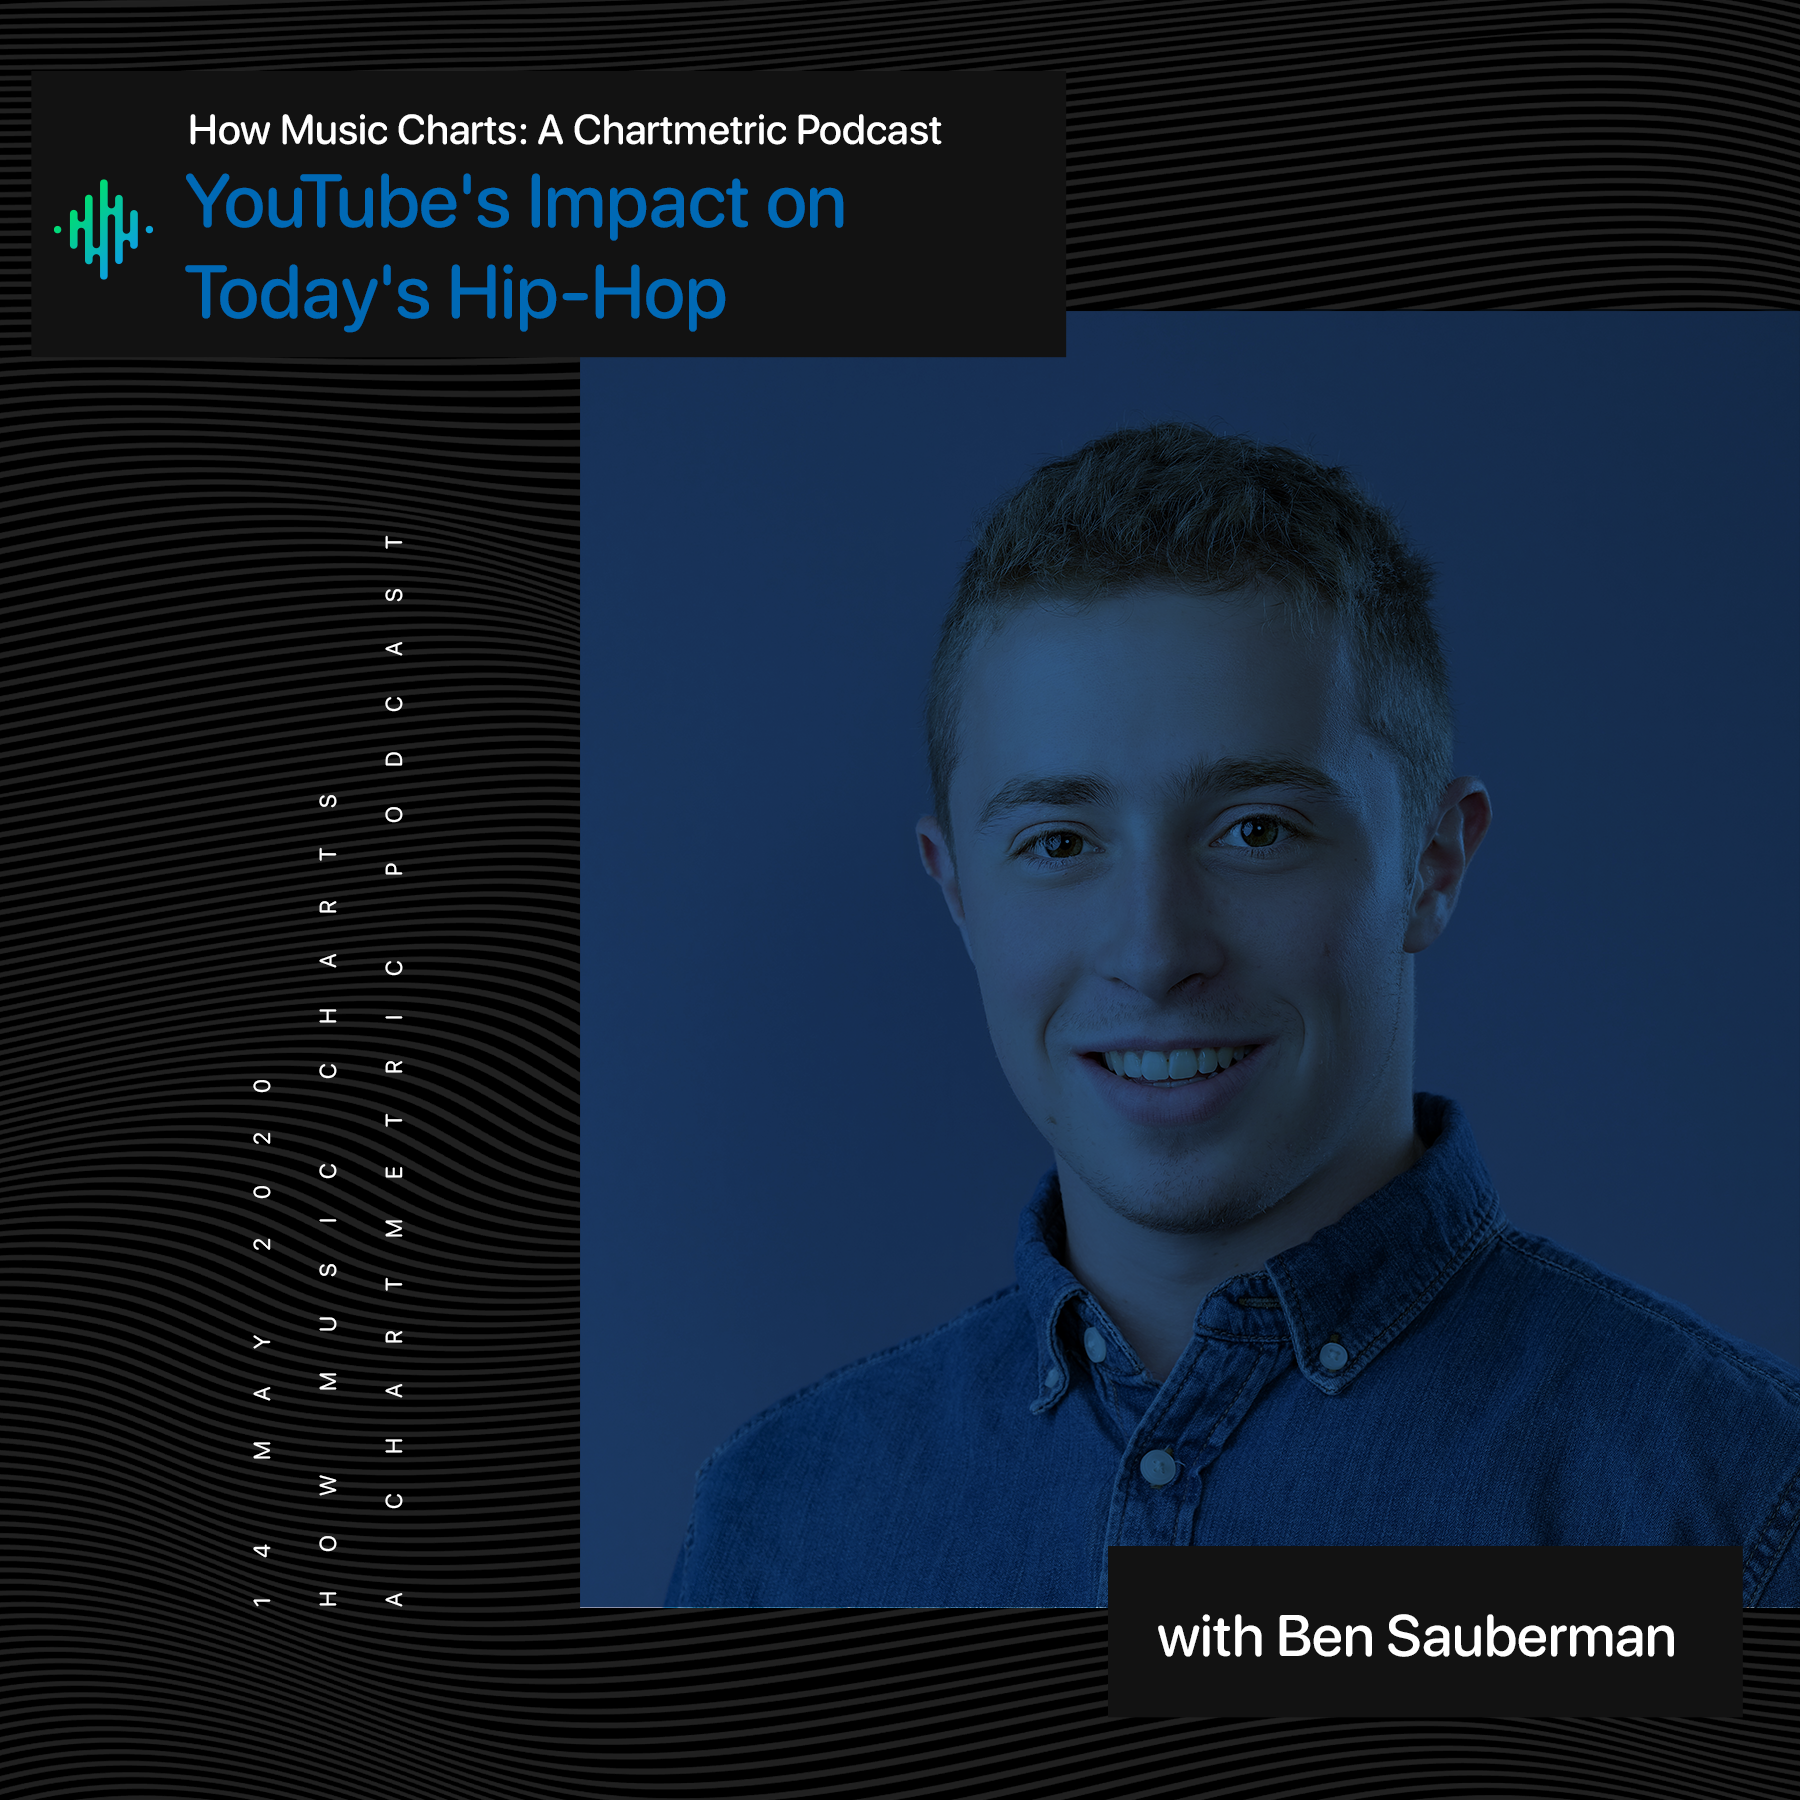 YouTube's Impact on Today's Hip-Hop With Ben Sauberman